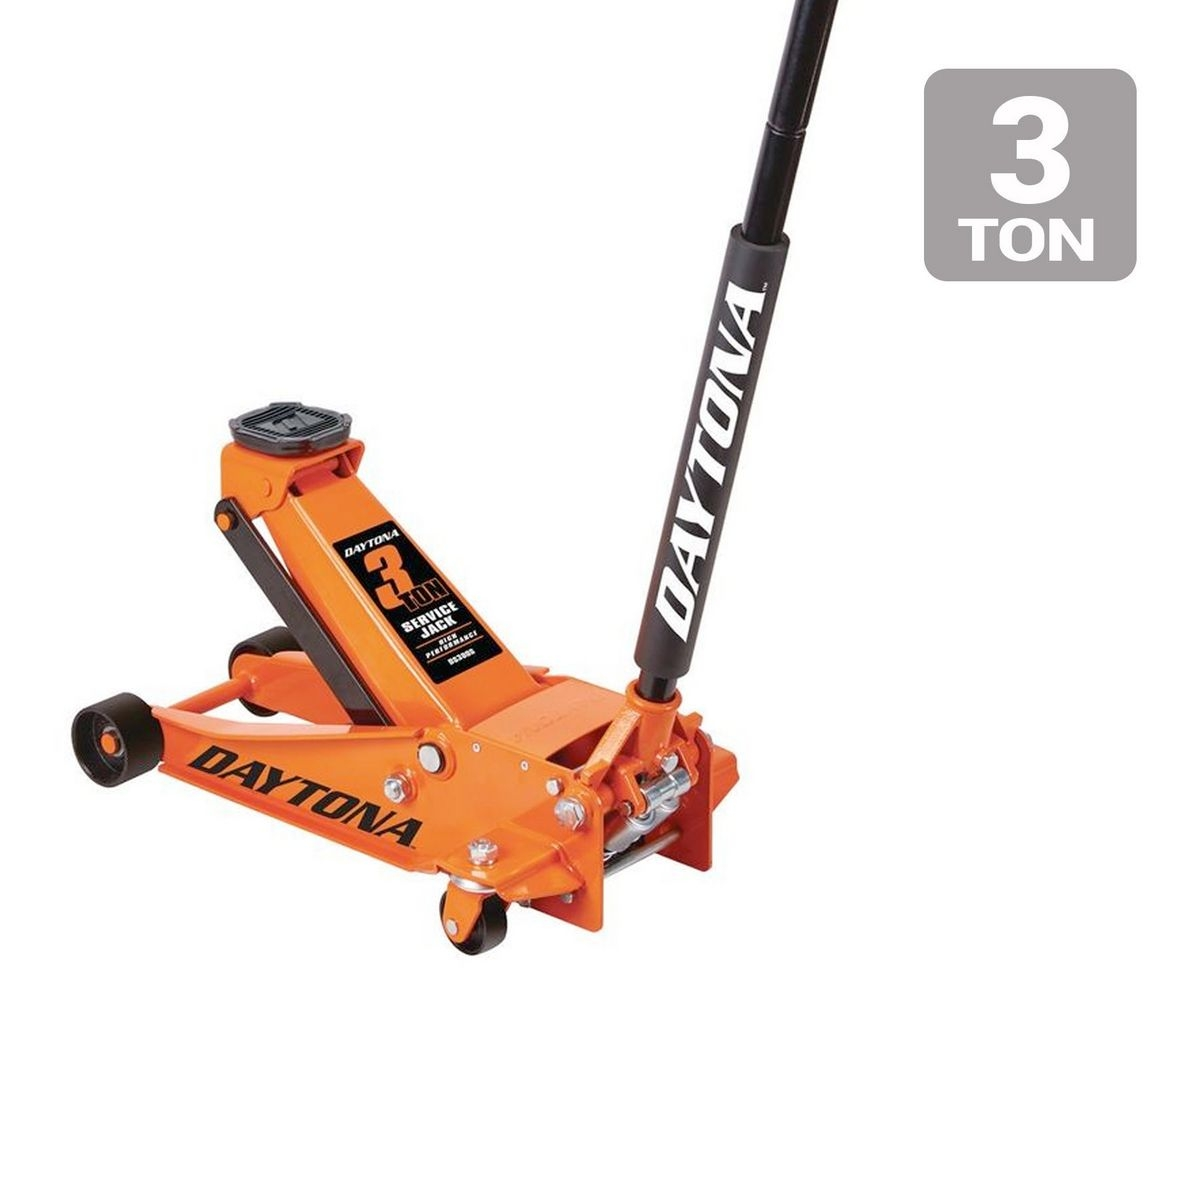 Daytona Heavy Duty Car Jack